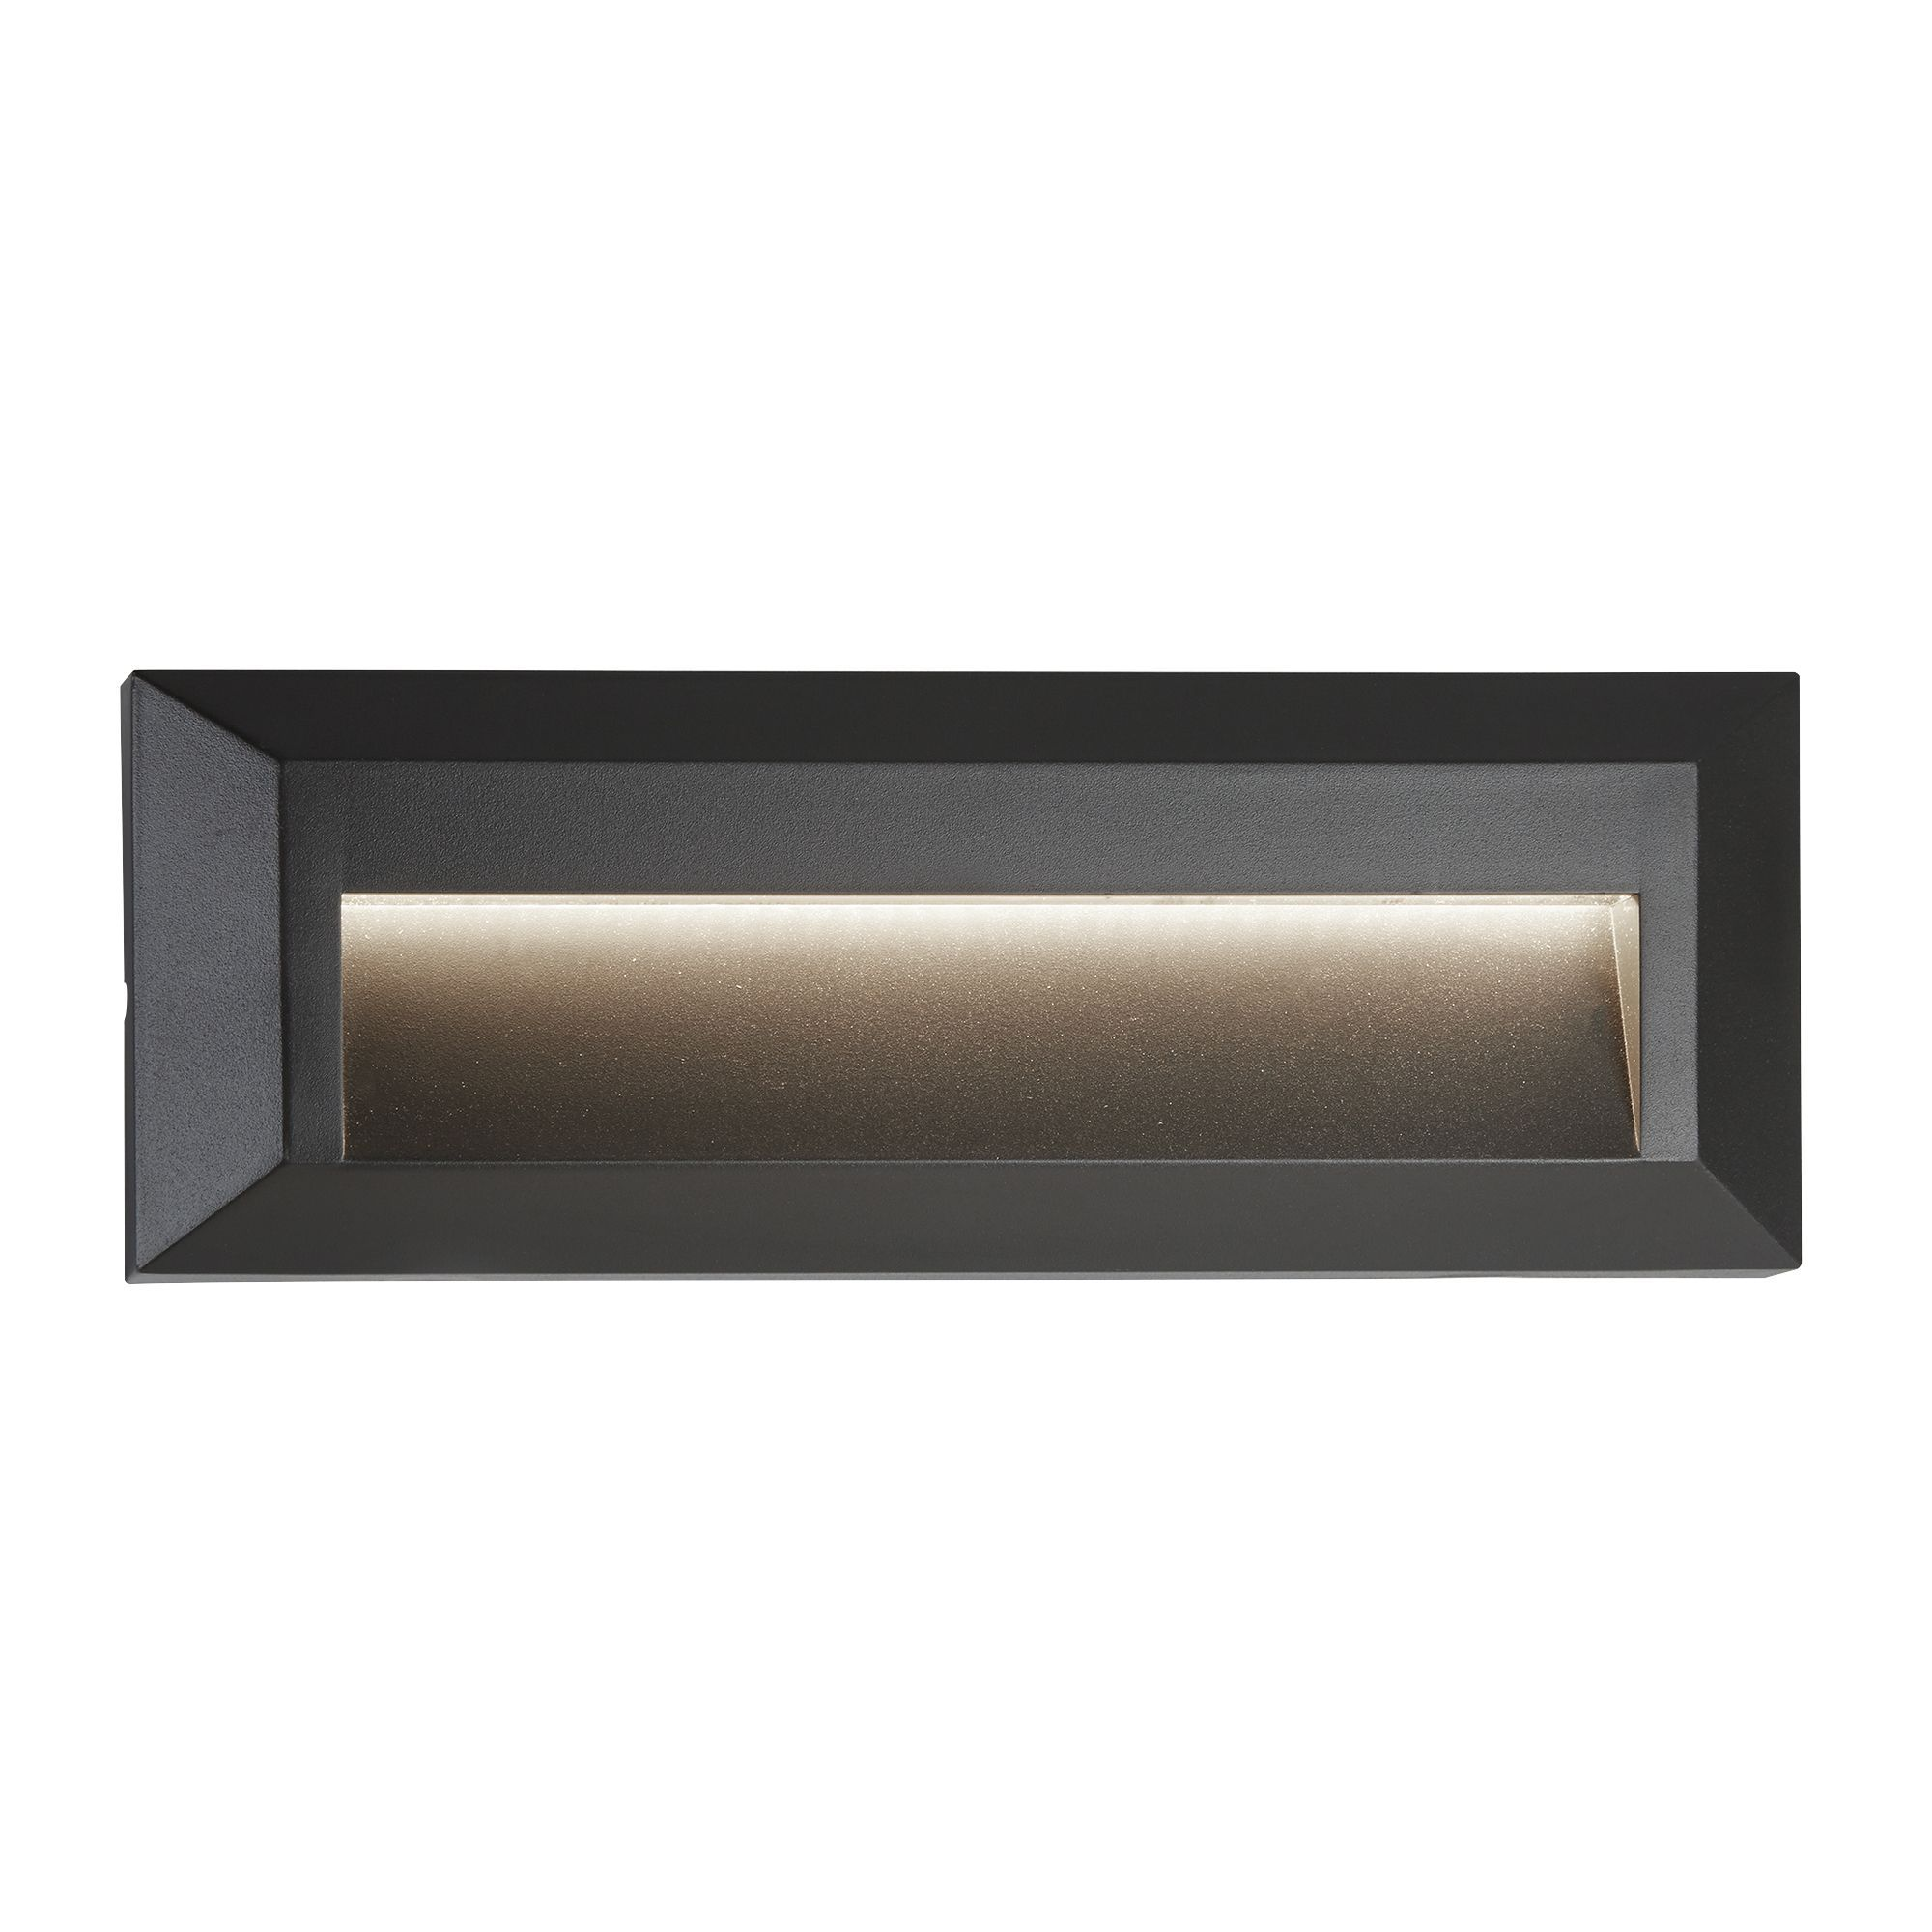 Ankle Outdoor 1 Light Led Slot Wall Light Dark Grey 8732GY